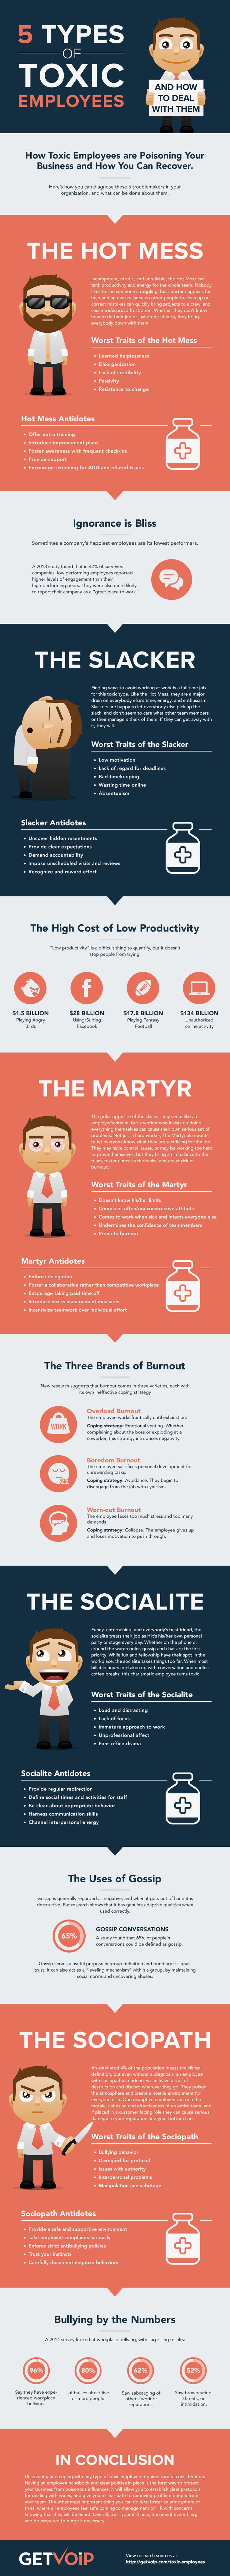 5 Types of Toxic Employees and How to Deal with Them #infographic #Employees…